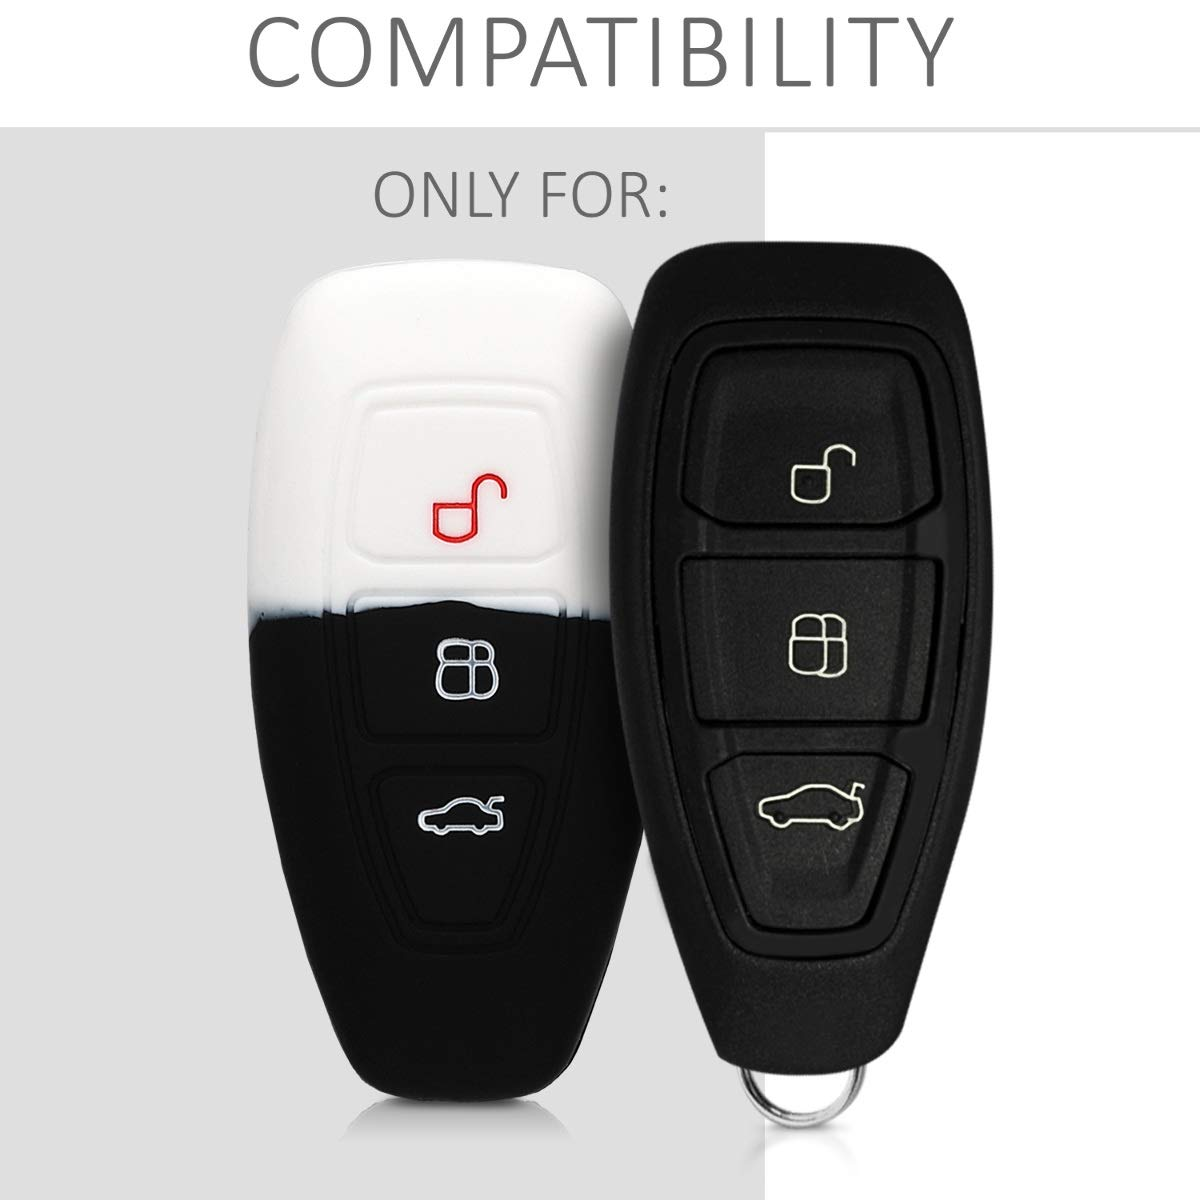 kwmobile Car Key Cover for Honda Silicone Protective Key Fob Cover for Honda 2+1 Button Car Key Black